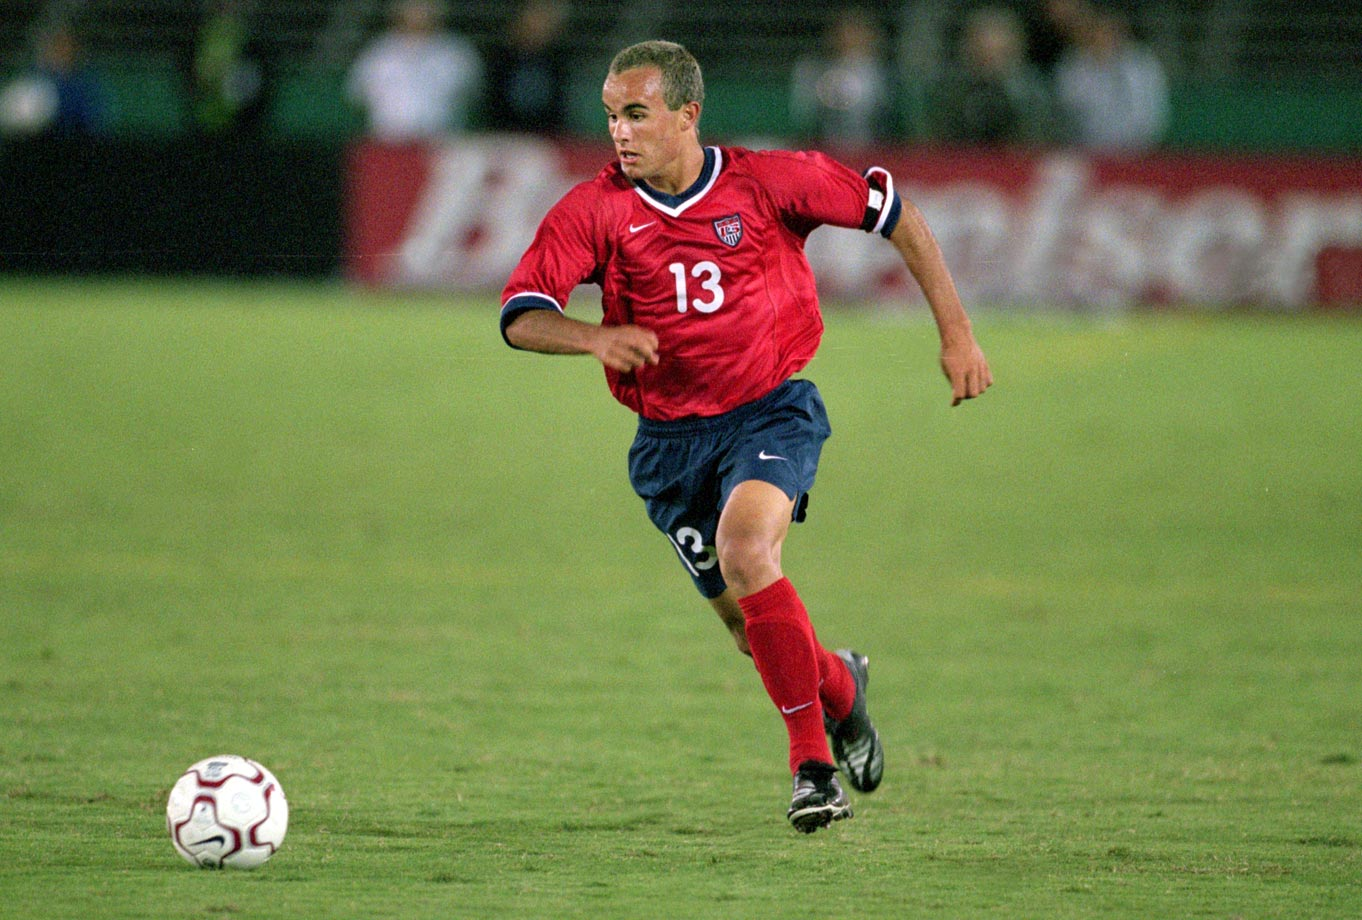 Landon Donovan runs after the ball during a game against Mexico at the Los Angeles Coliseum. The USA defeated Mexico 2-0.